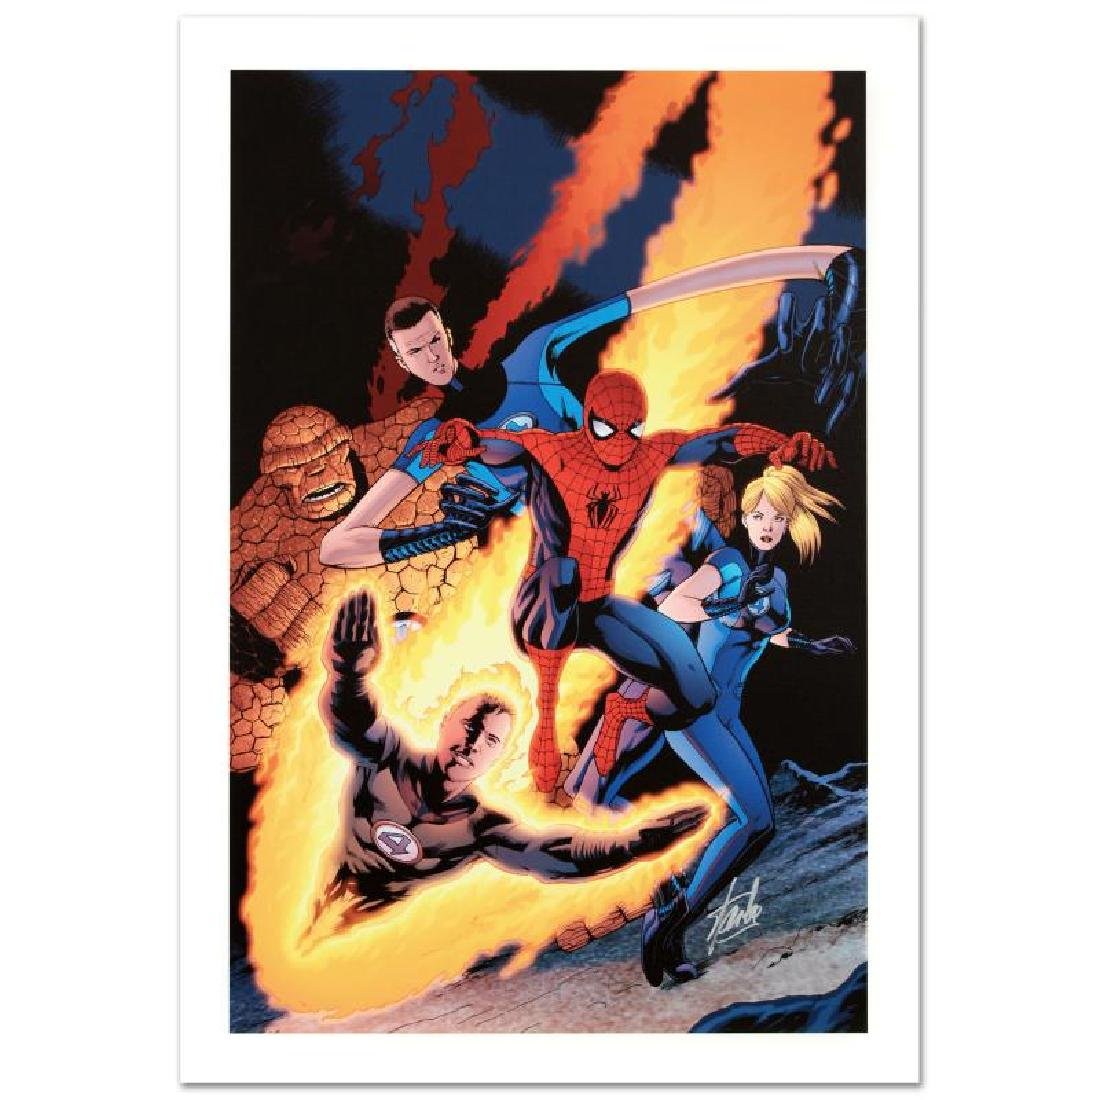 The Amazing Spider-Man #590 by Stan Lee - Marvel Comics